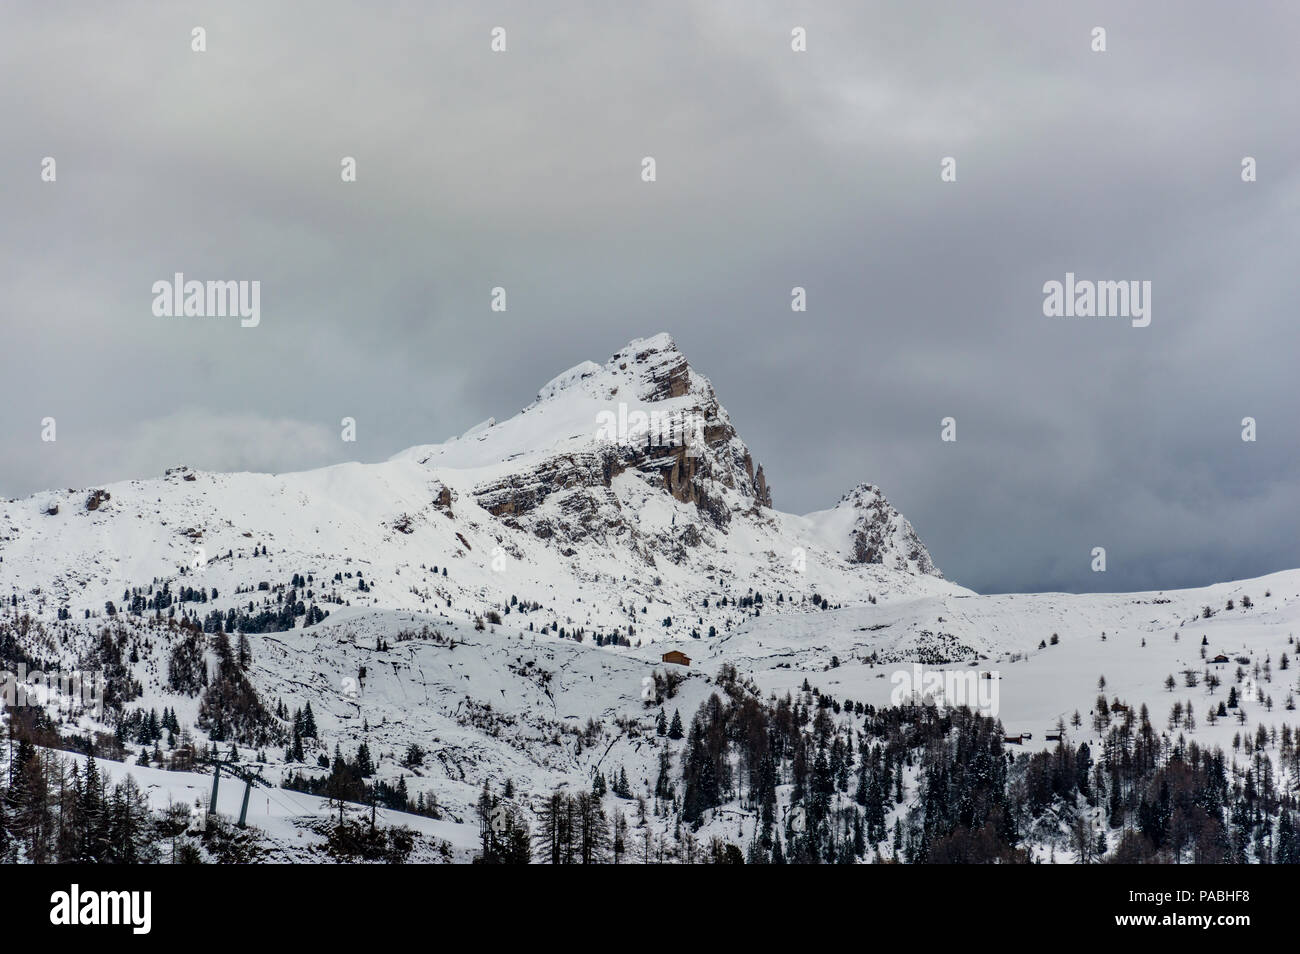 Beautiful view of the Dolomites mountains around Corvara. Alta Badia is the highest part of the Badia Valley in the Trentino Alto Adie region. Stock Photo